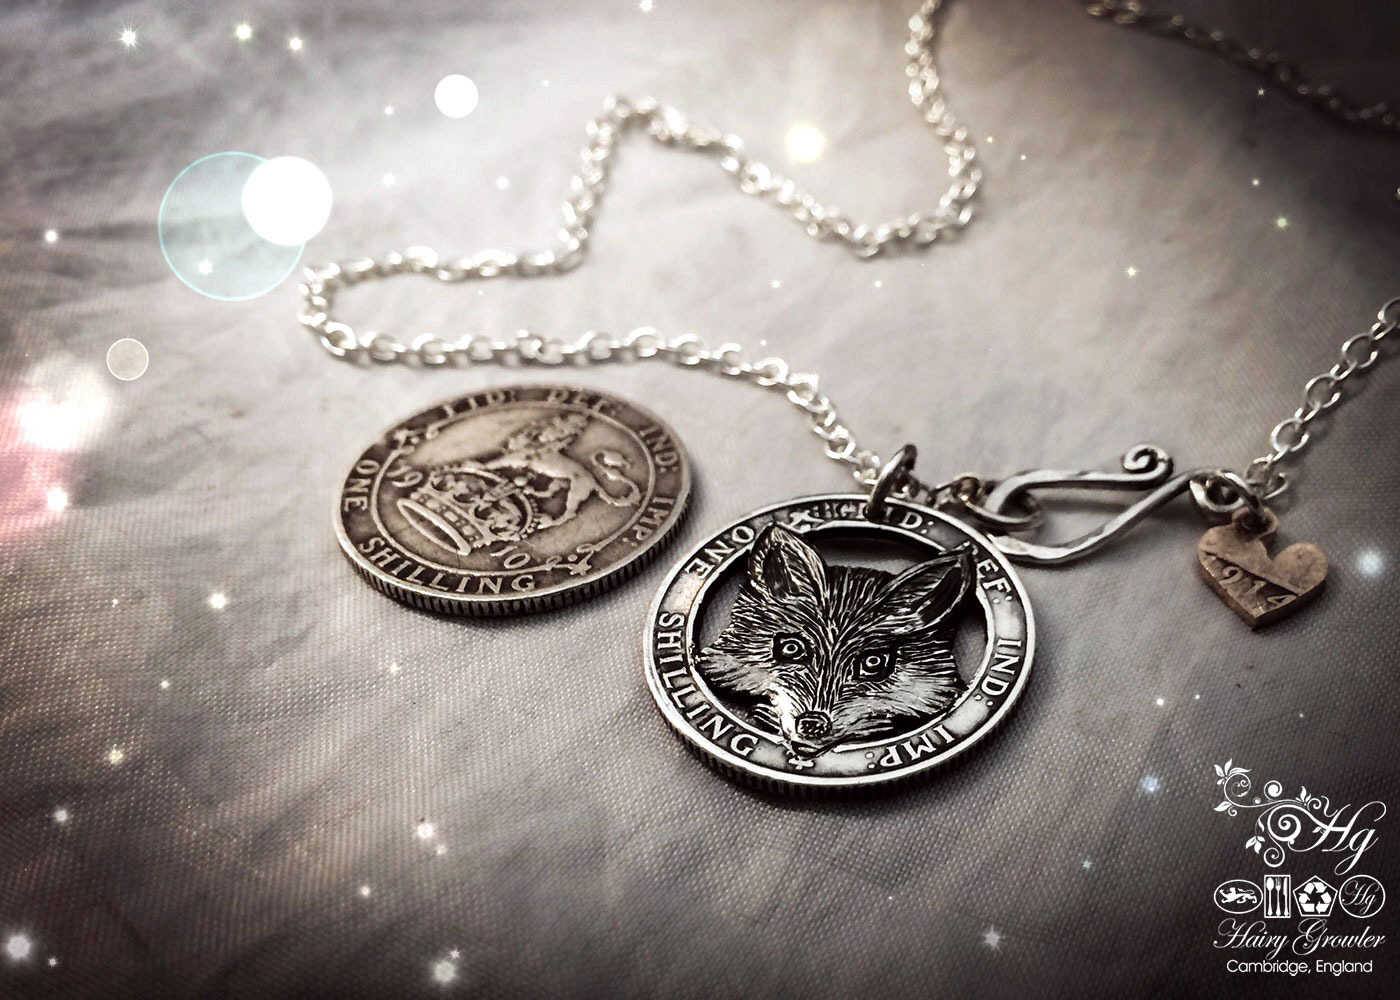 Hand crafted and upcycled silver shilling The Silver Shilling collection. silver fox necklace totally handcrafted and recycled from old sterling silver shilling coins. Designed and created by Hairy Growler Jewellery, Cambridge, UK. necklace